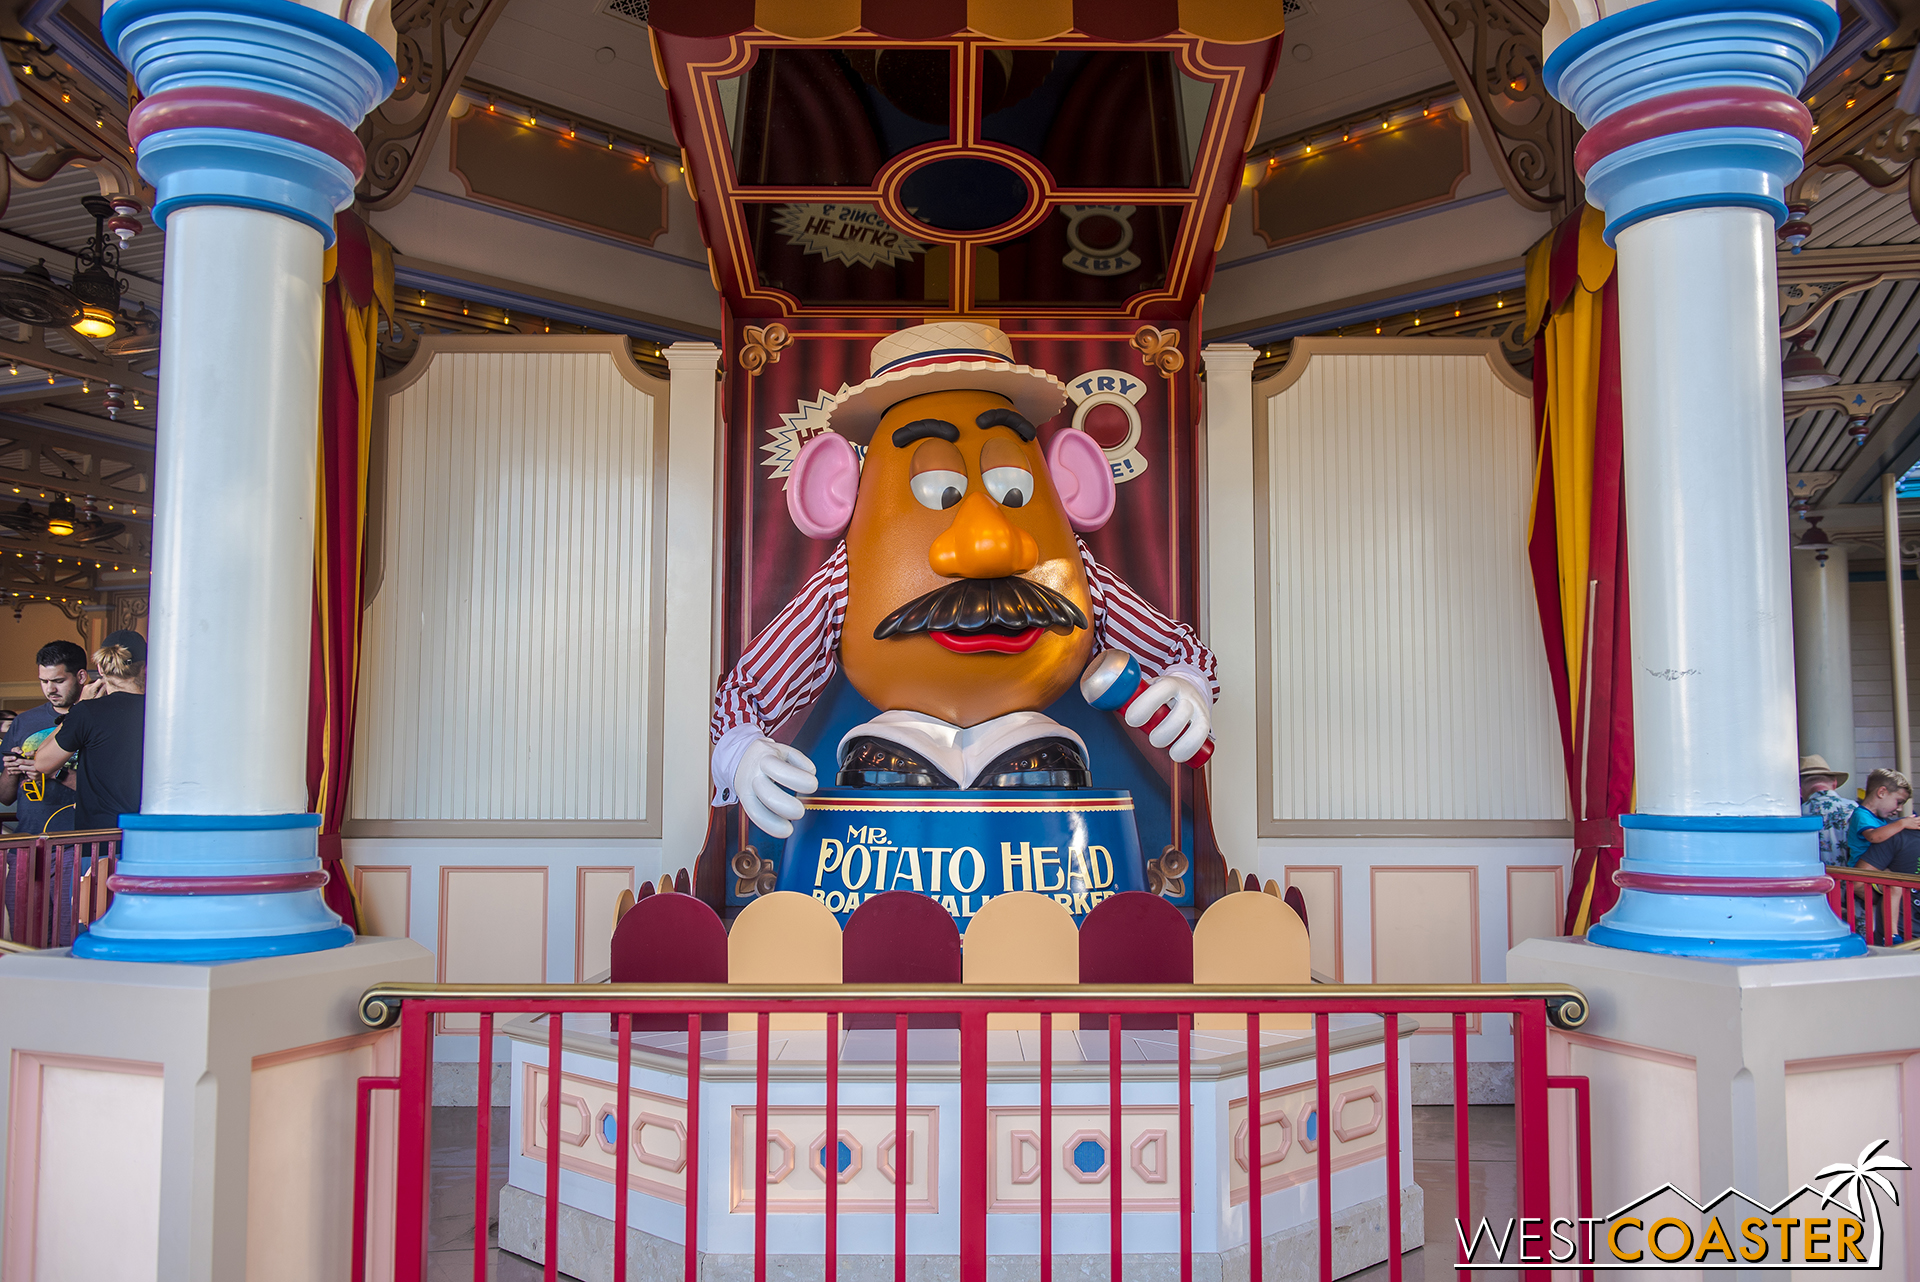 Also nice to see is Mr. Potato Head no longer confined behind the line.